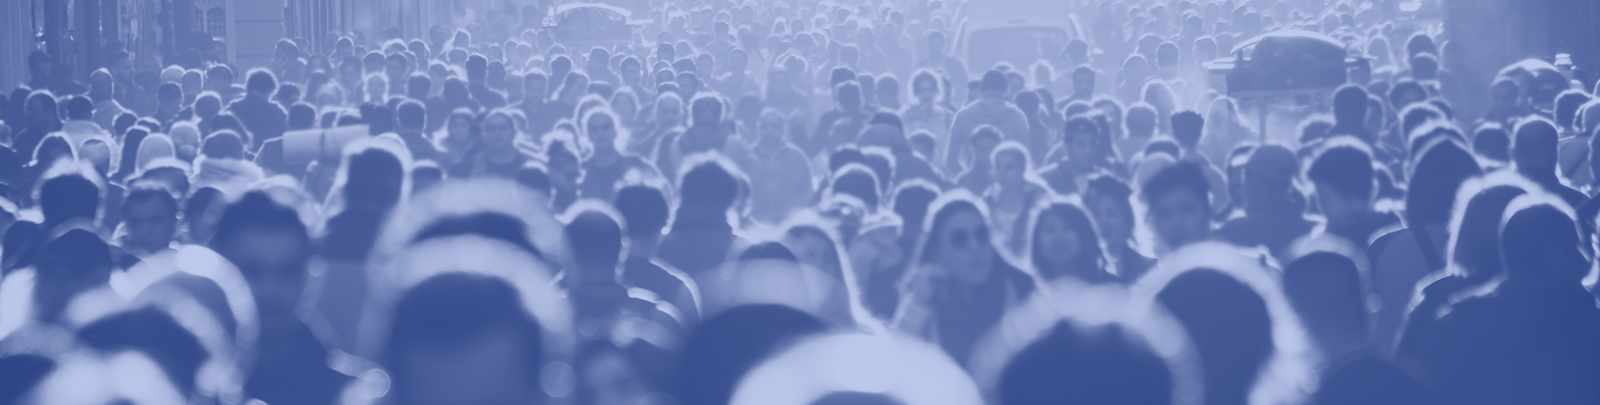 lots of people in a crowd header image